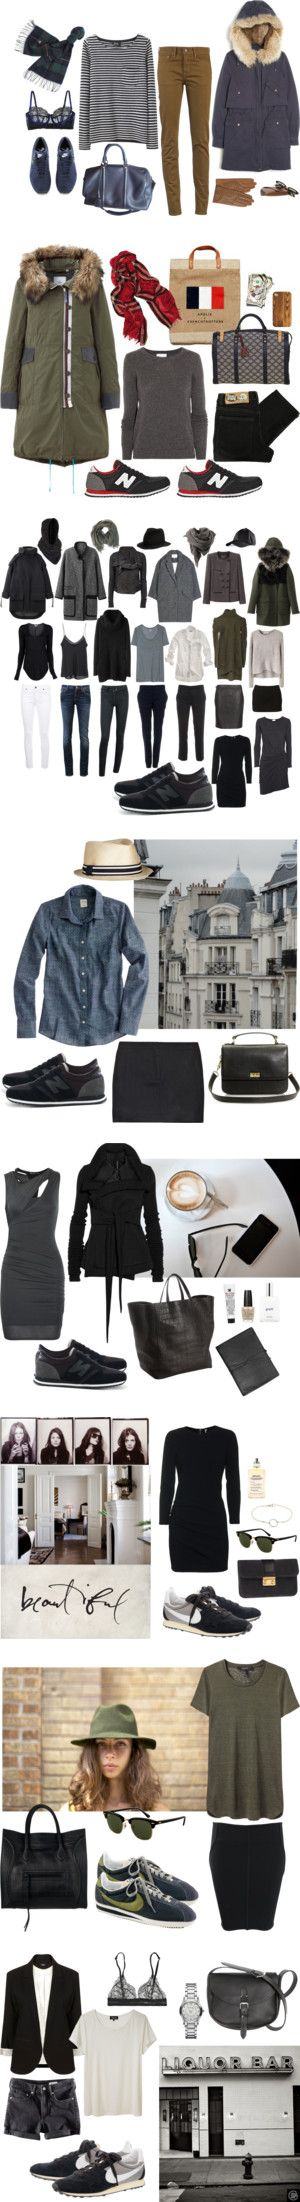 """Sneakers"" by coffeestainedcashmere ❤ liked on Polyvore"